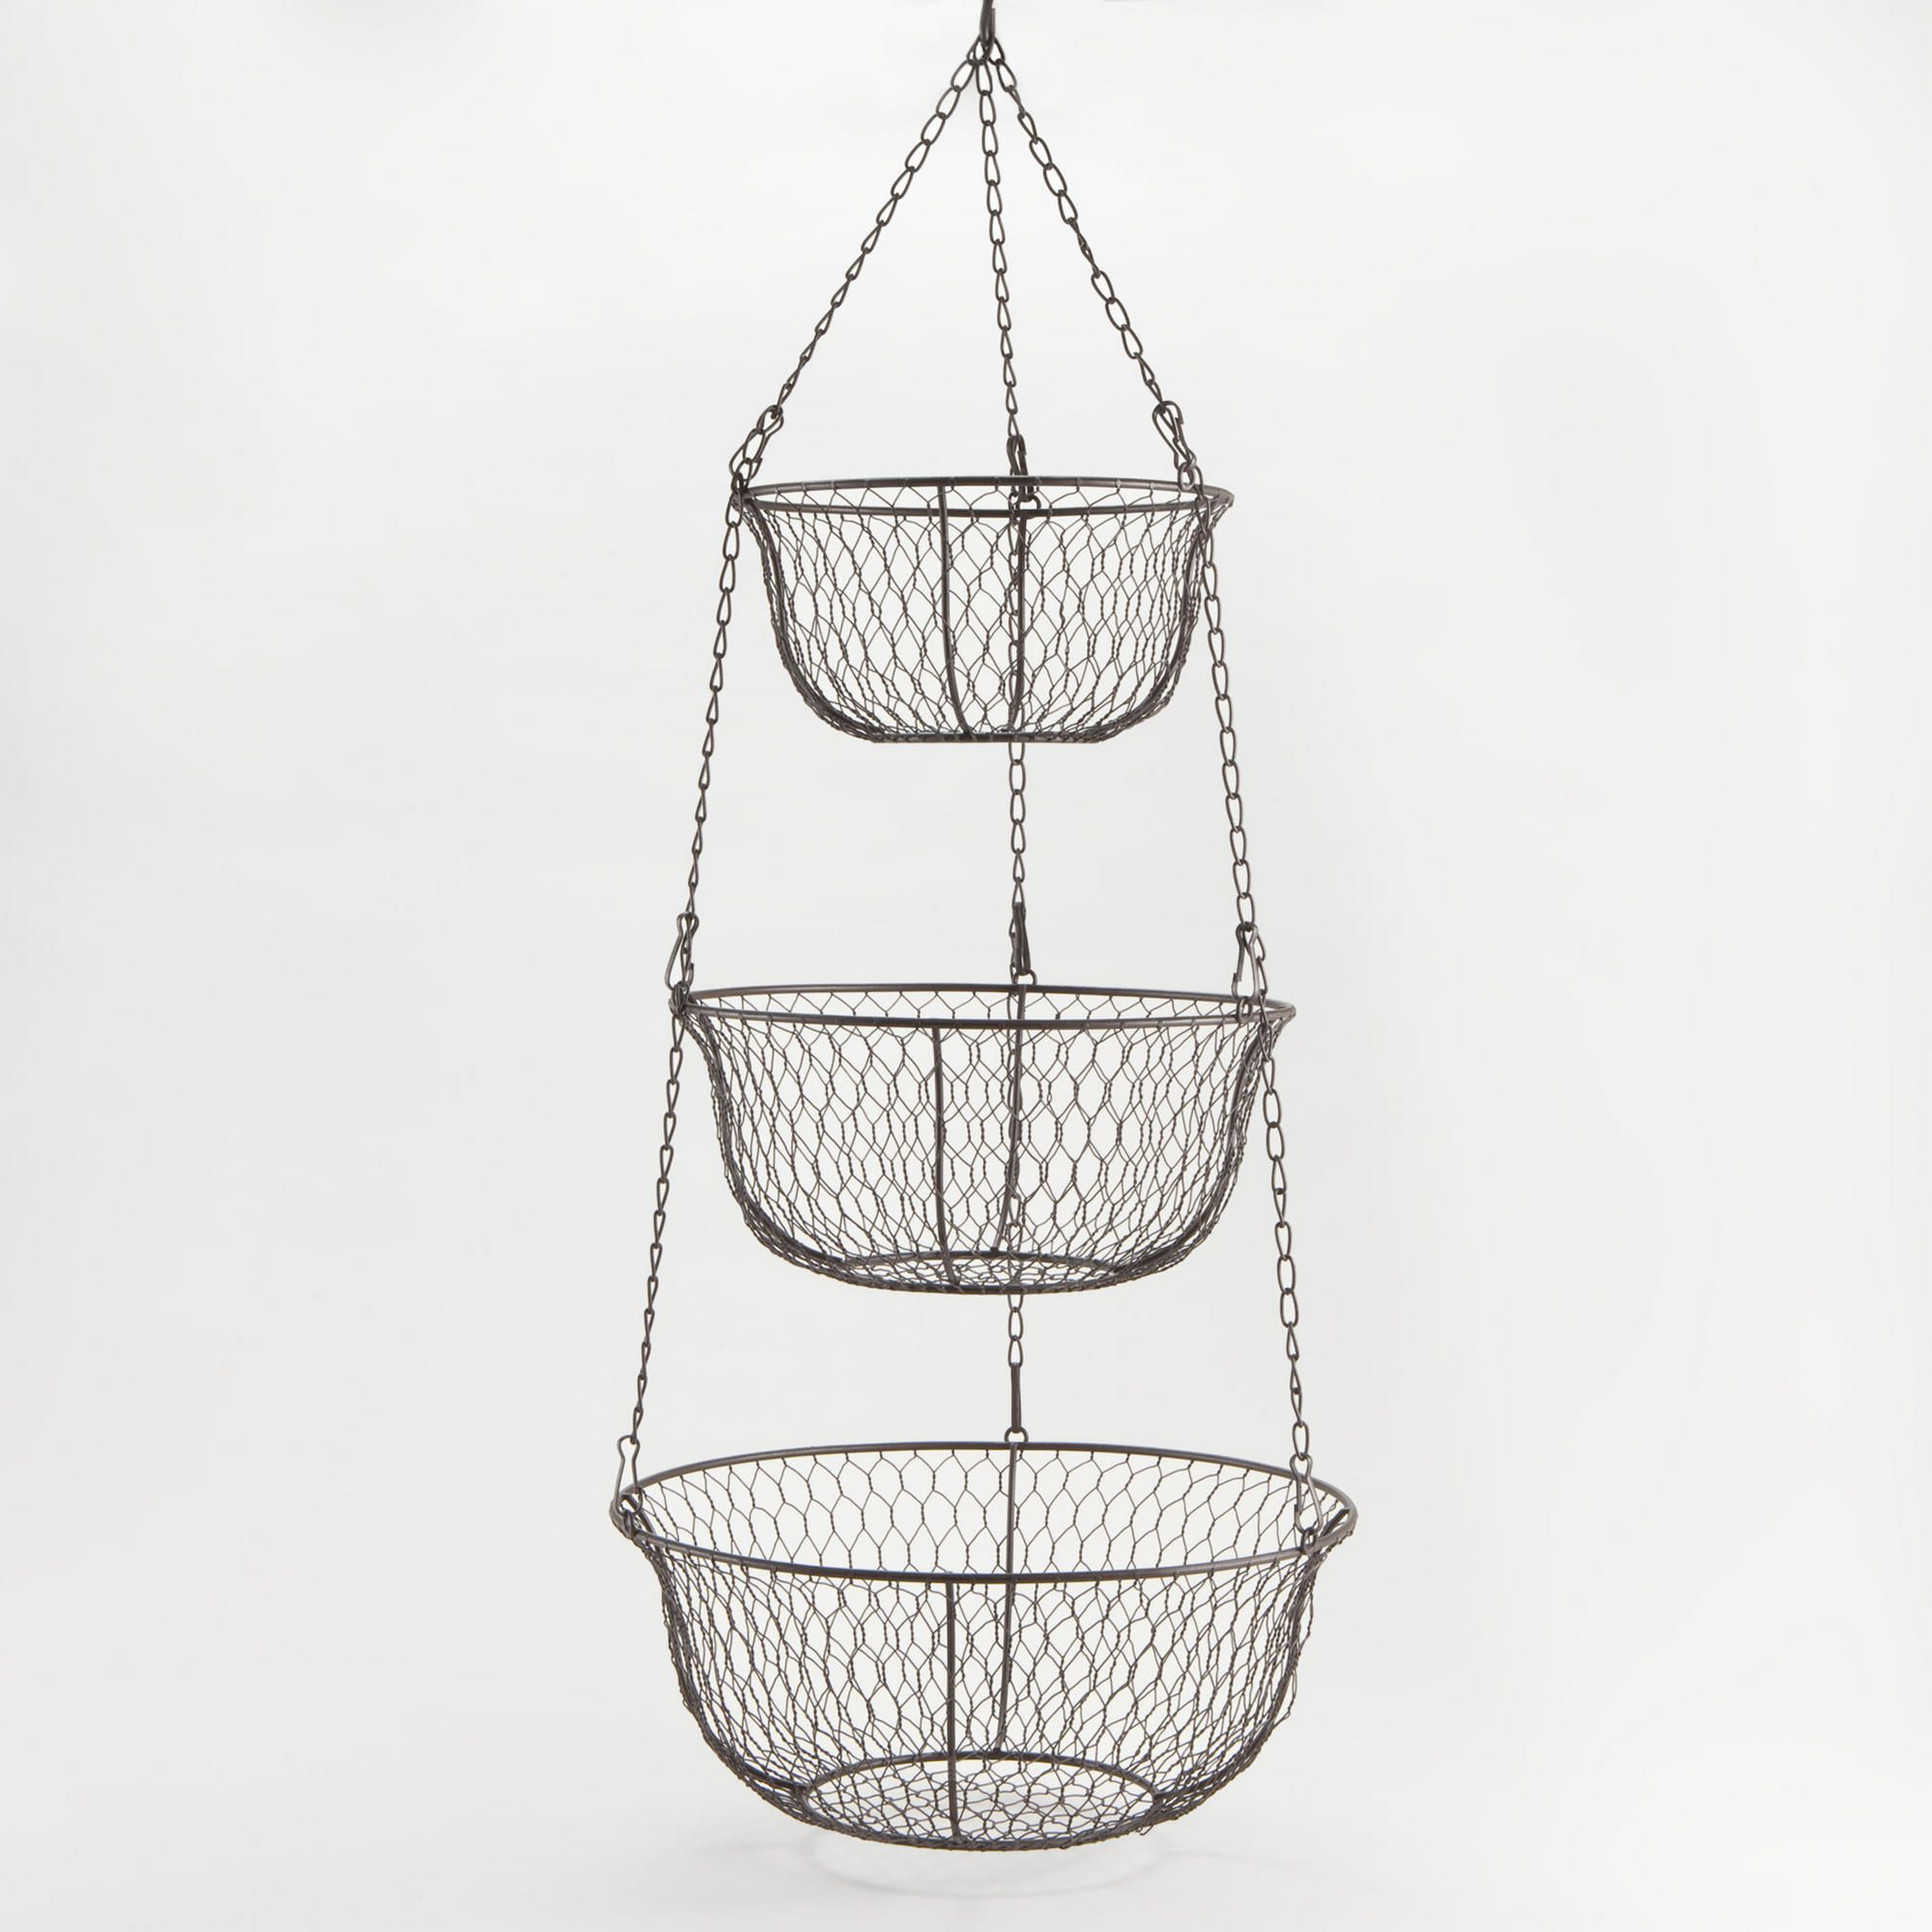 wire three tier hanging basket hanging baskets wire. Black Bedroom Furniture Sets. Home Design Ideas